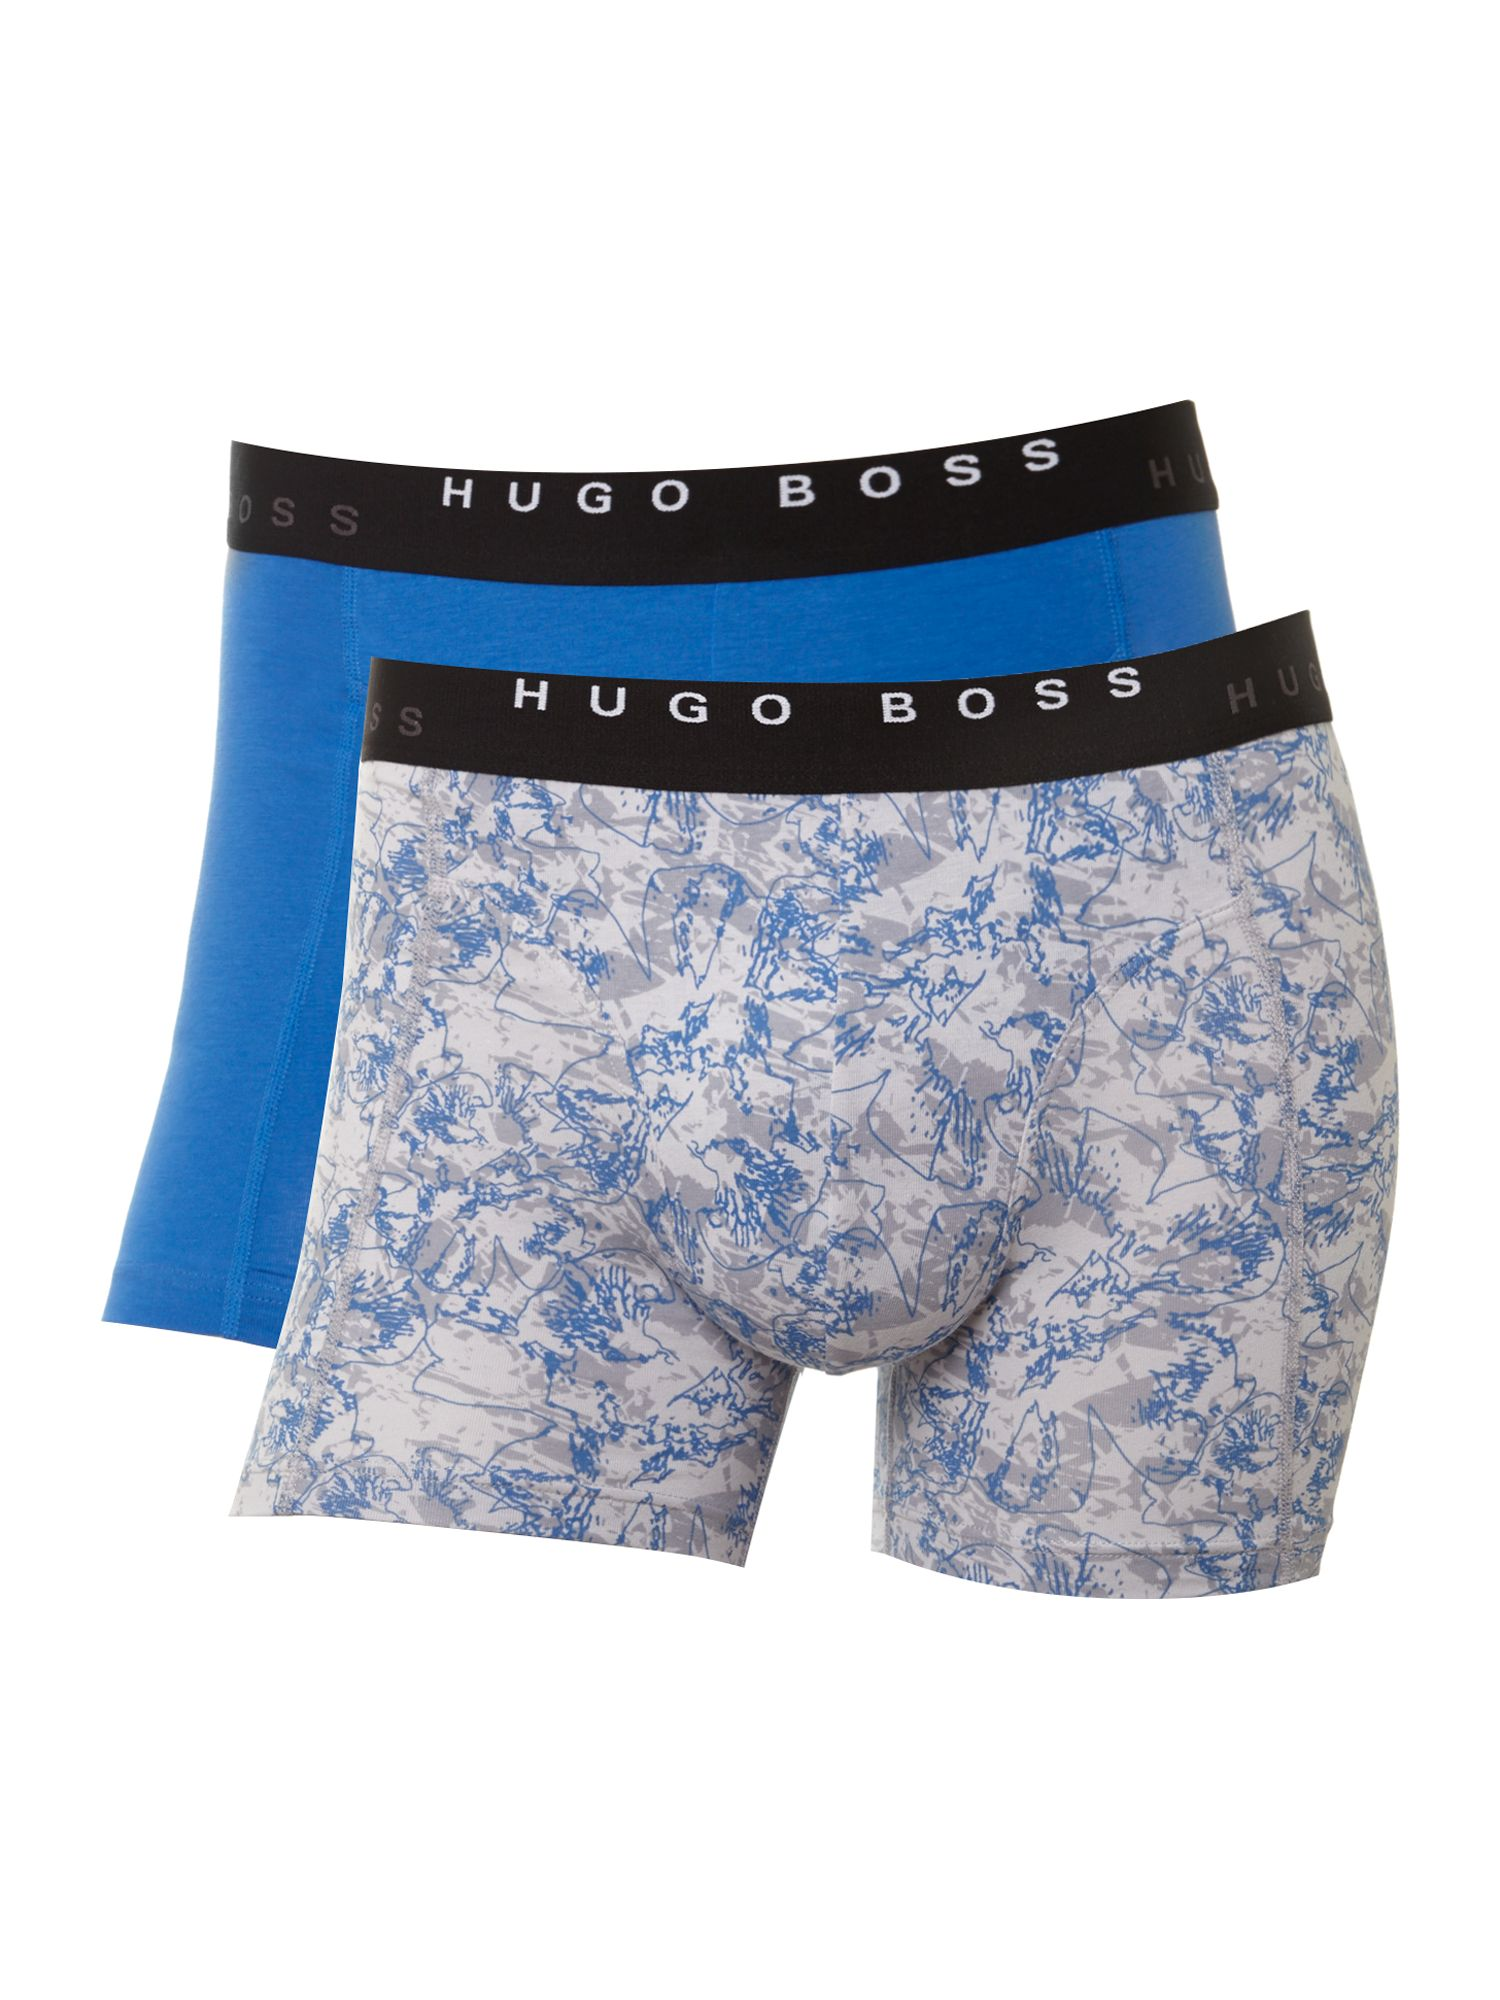 2 pack cyclist underwear